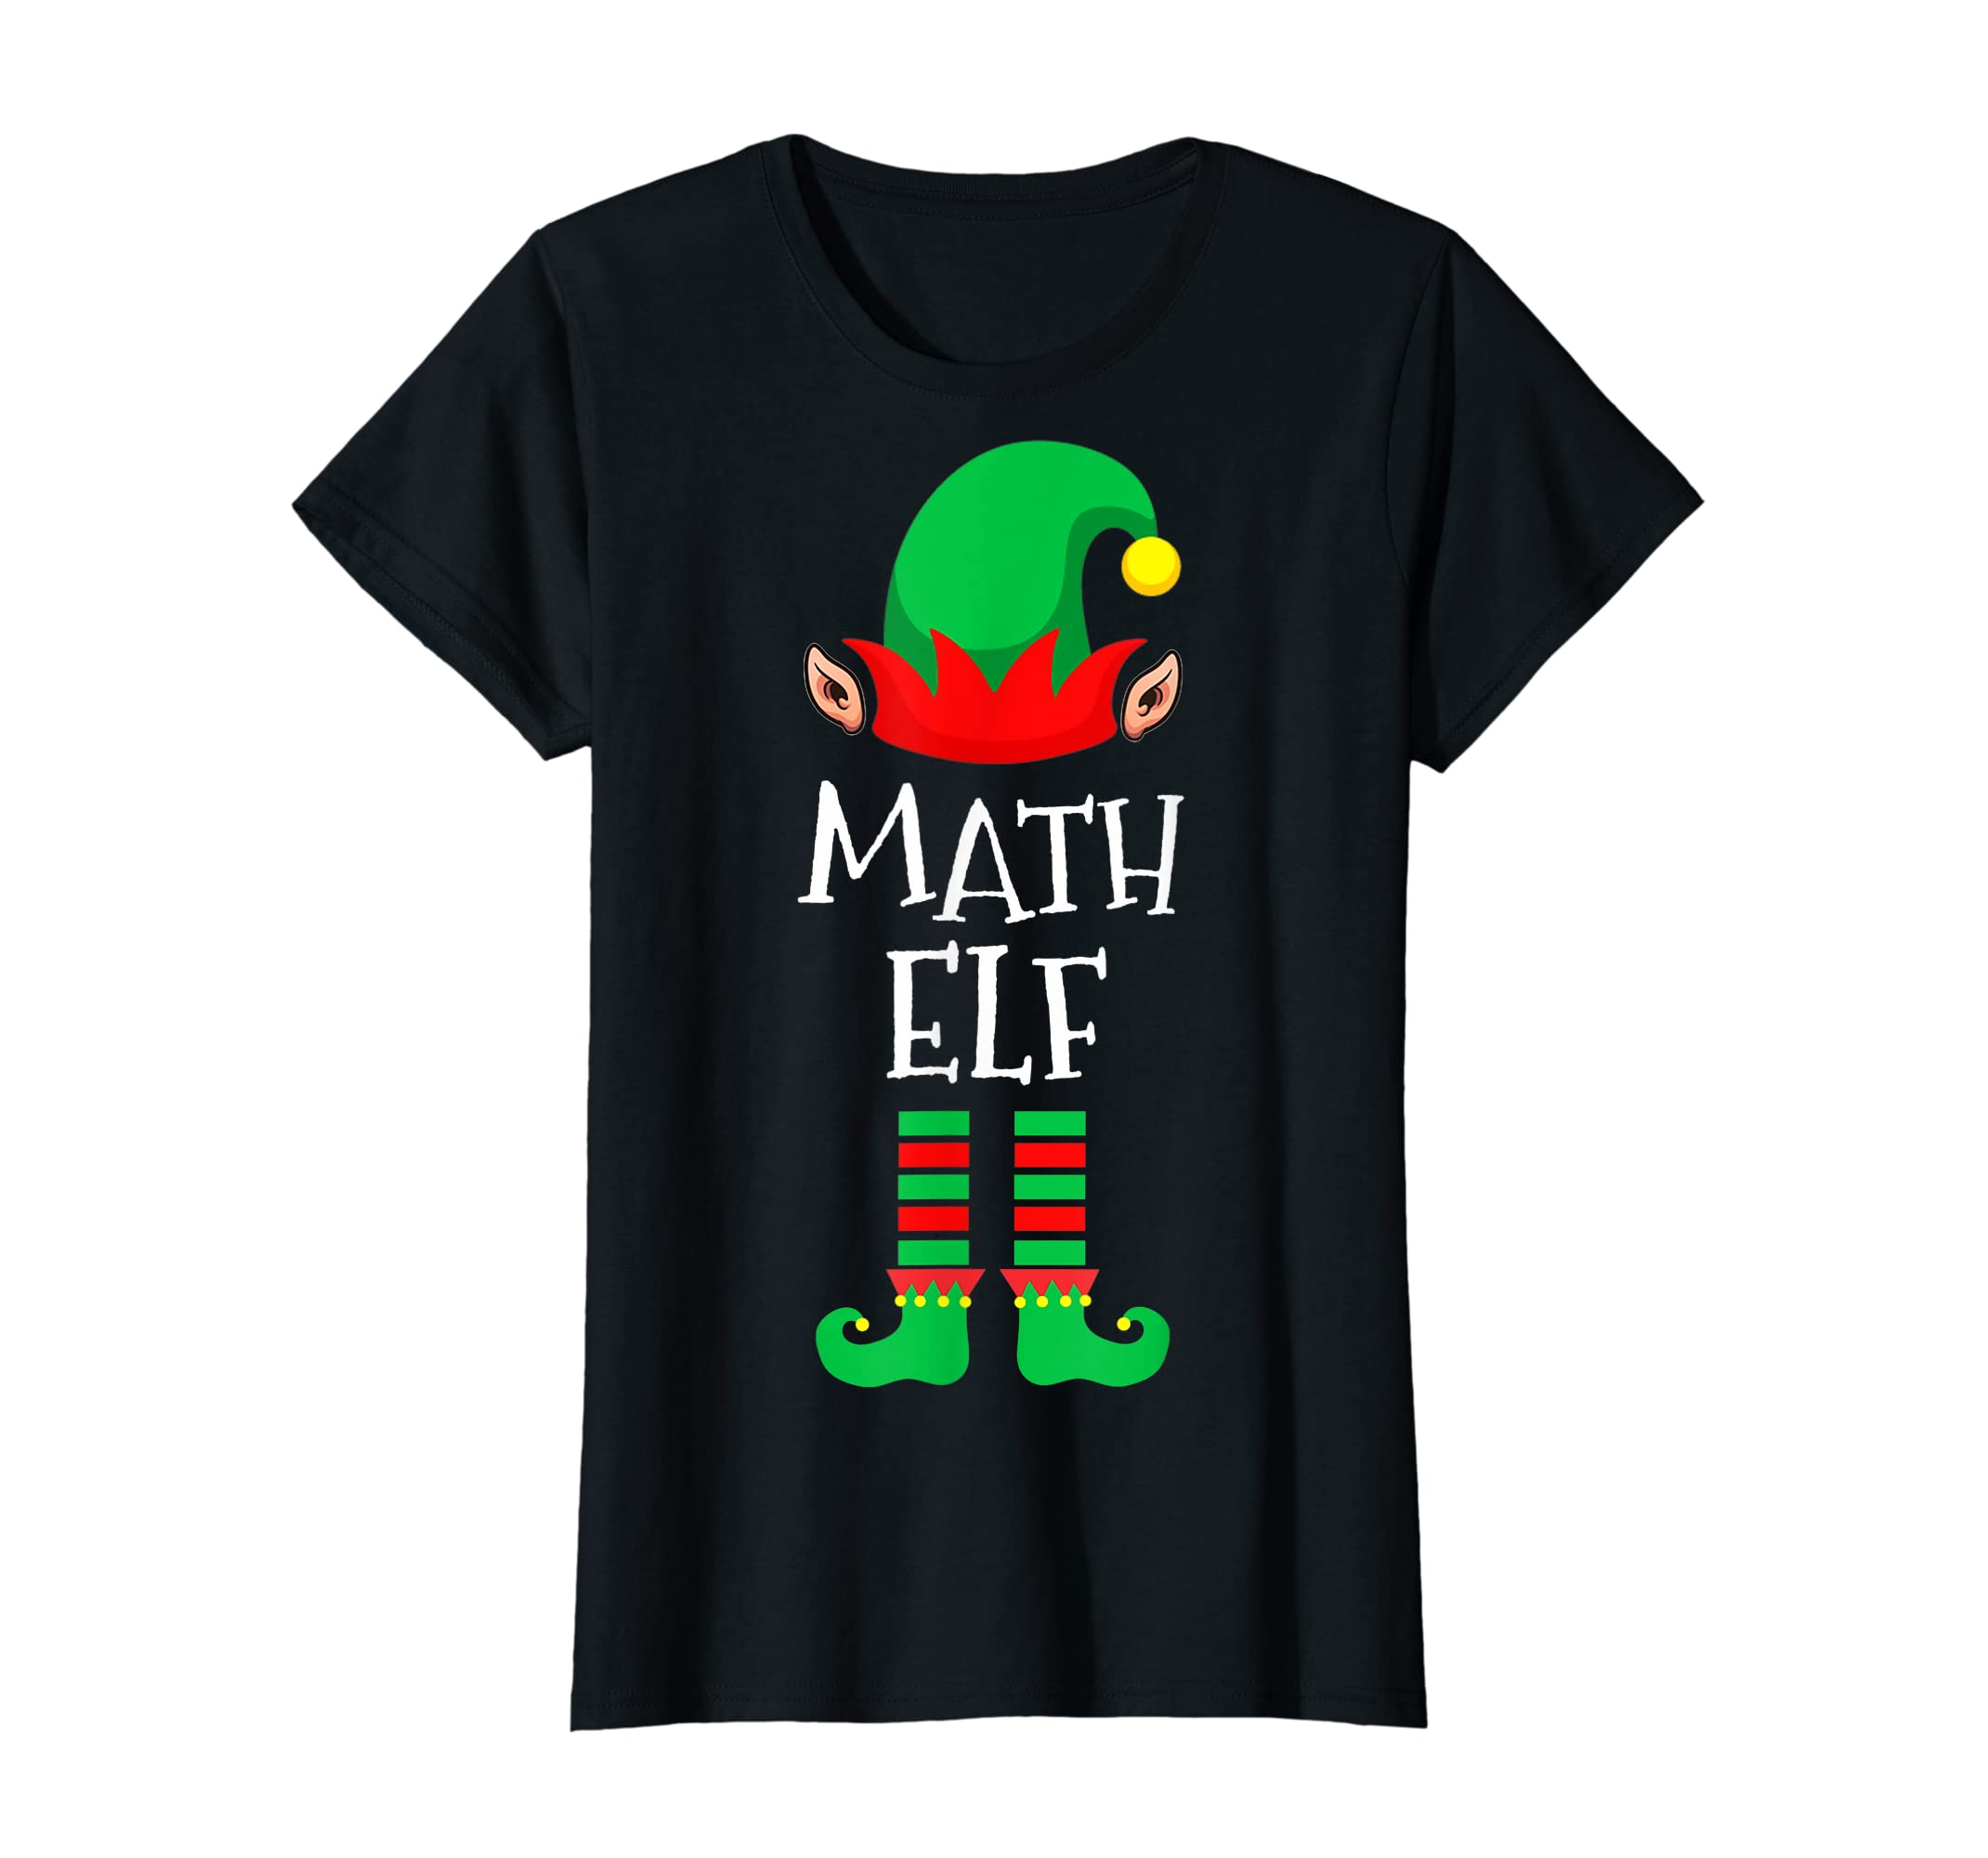 Math Elf - Funny School Teacher Christmas T-Shirt-Women's T-Shirt-Black